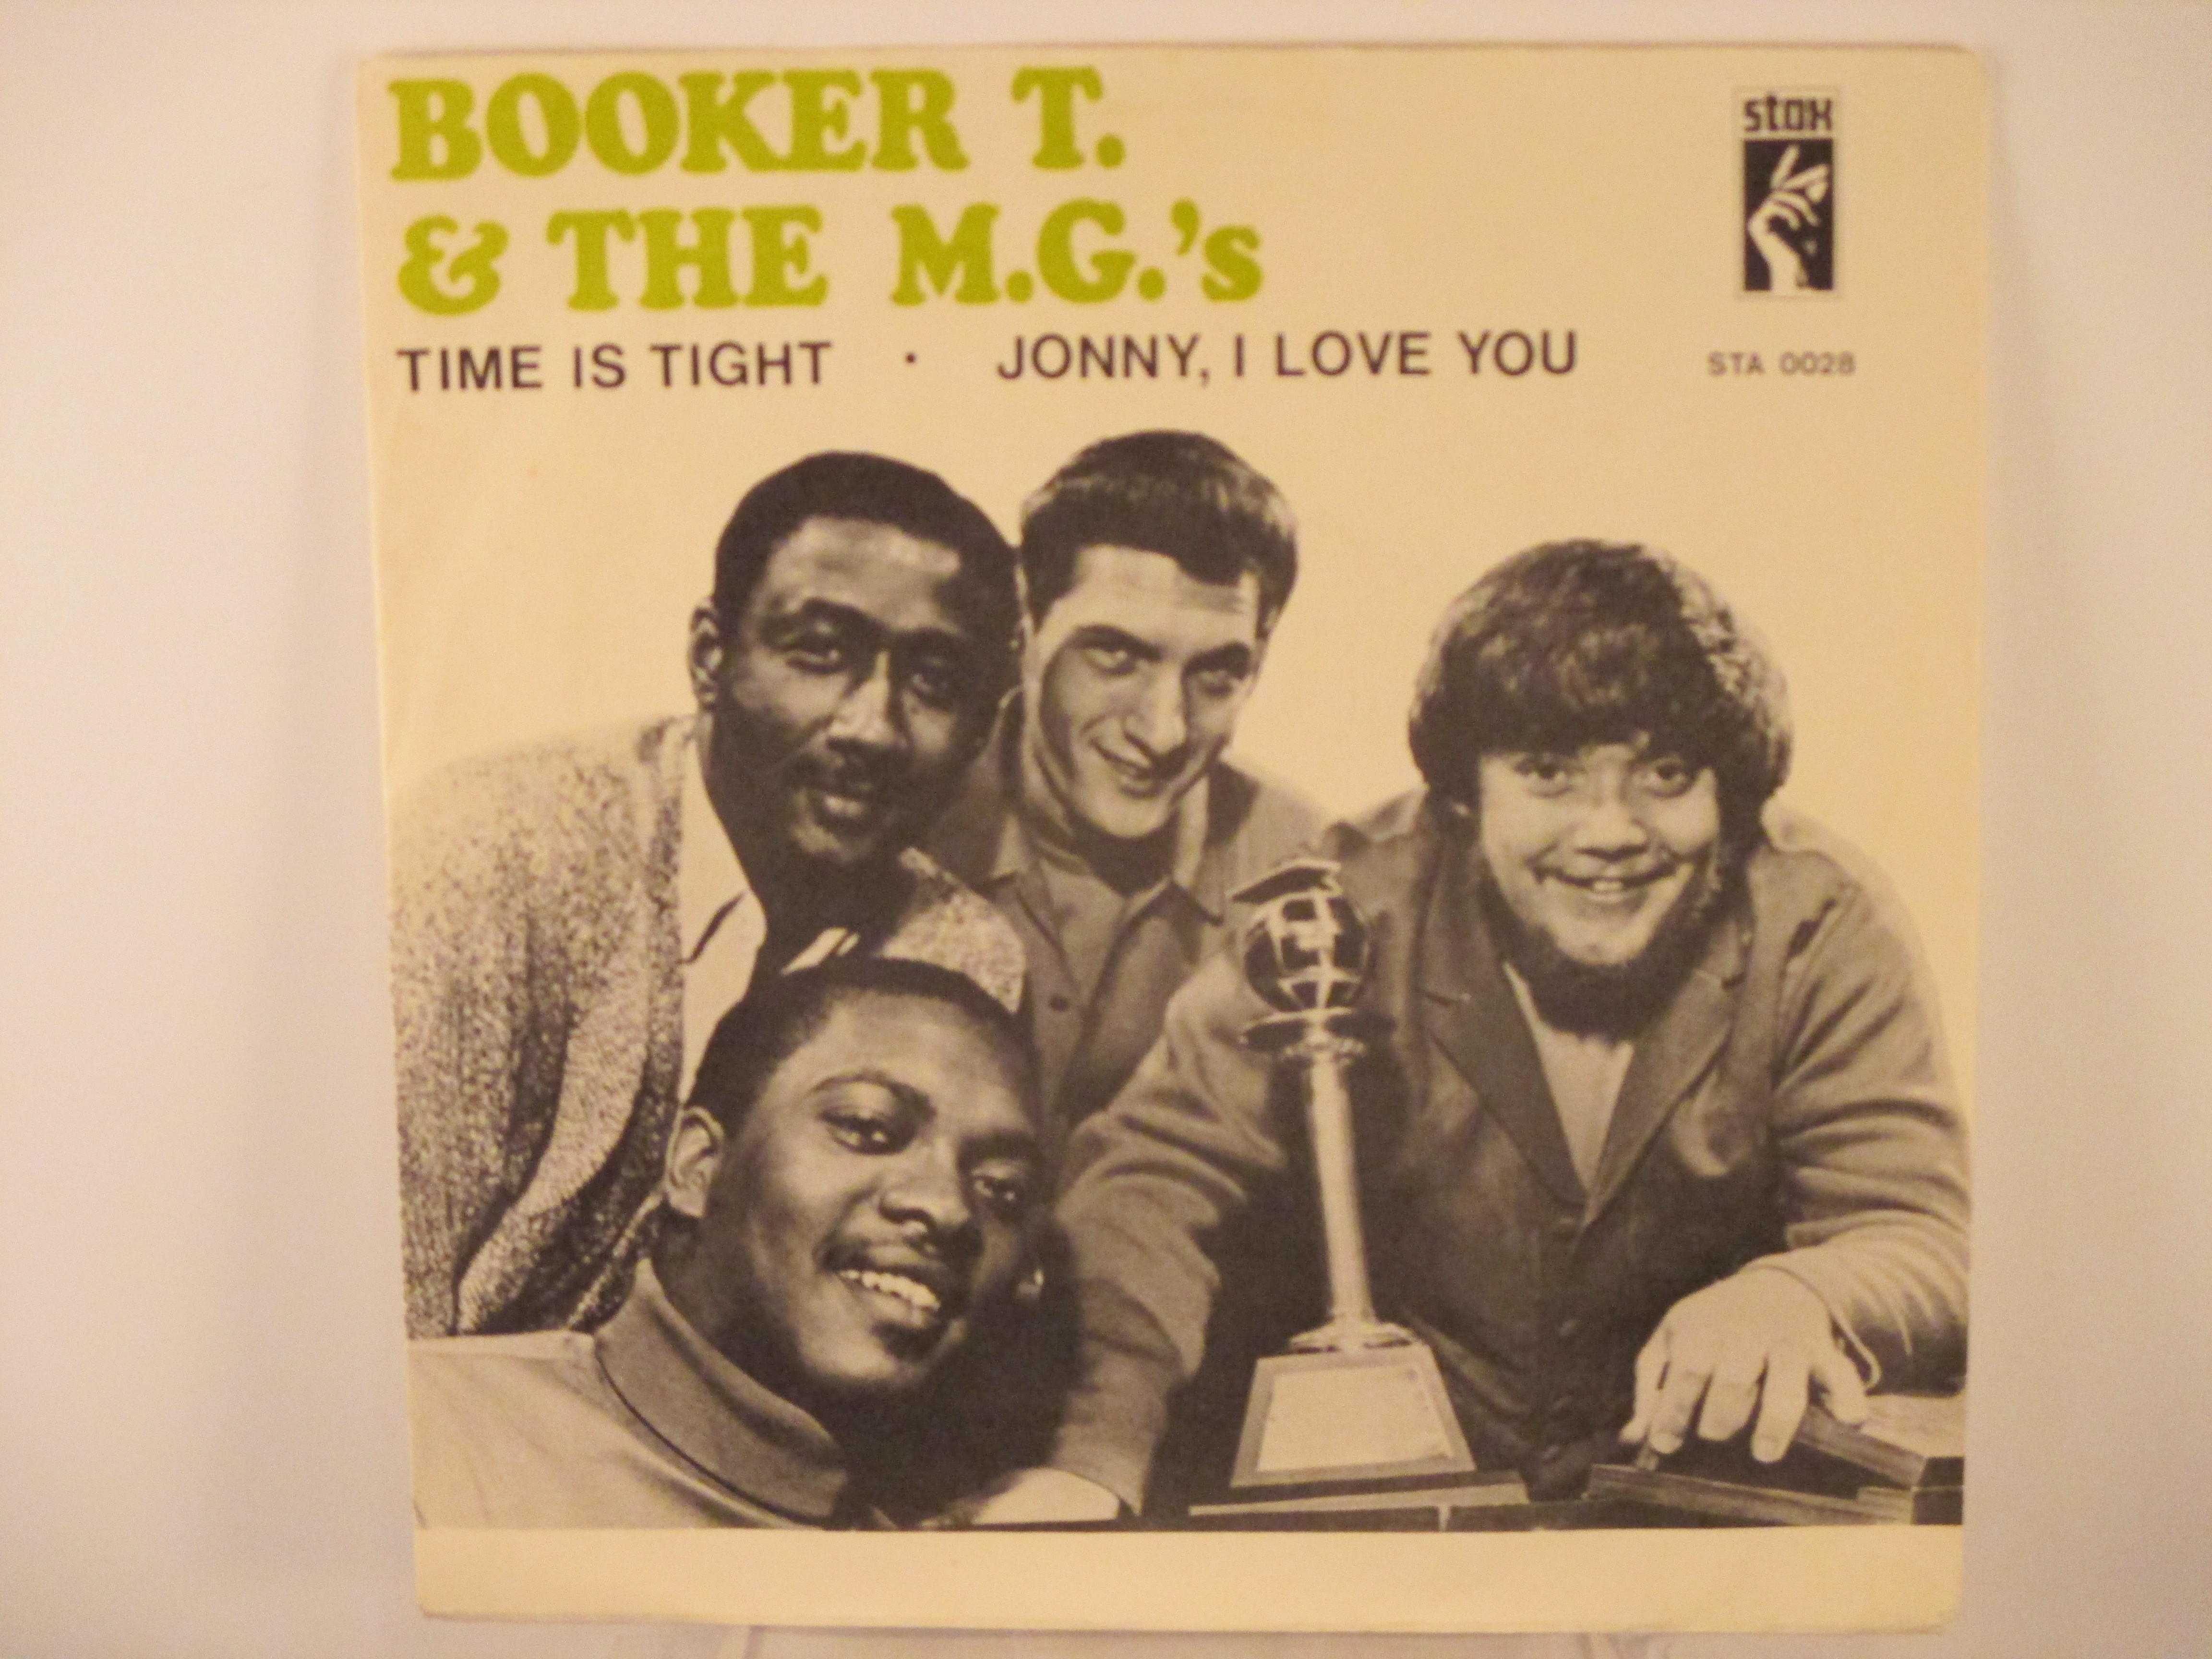 BOOKER T & MG's : Time is tight / Johnny, I love you